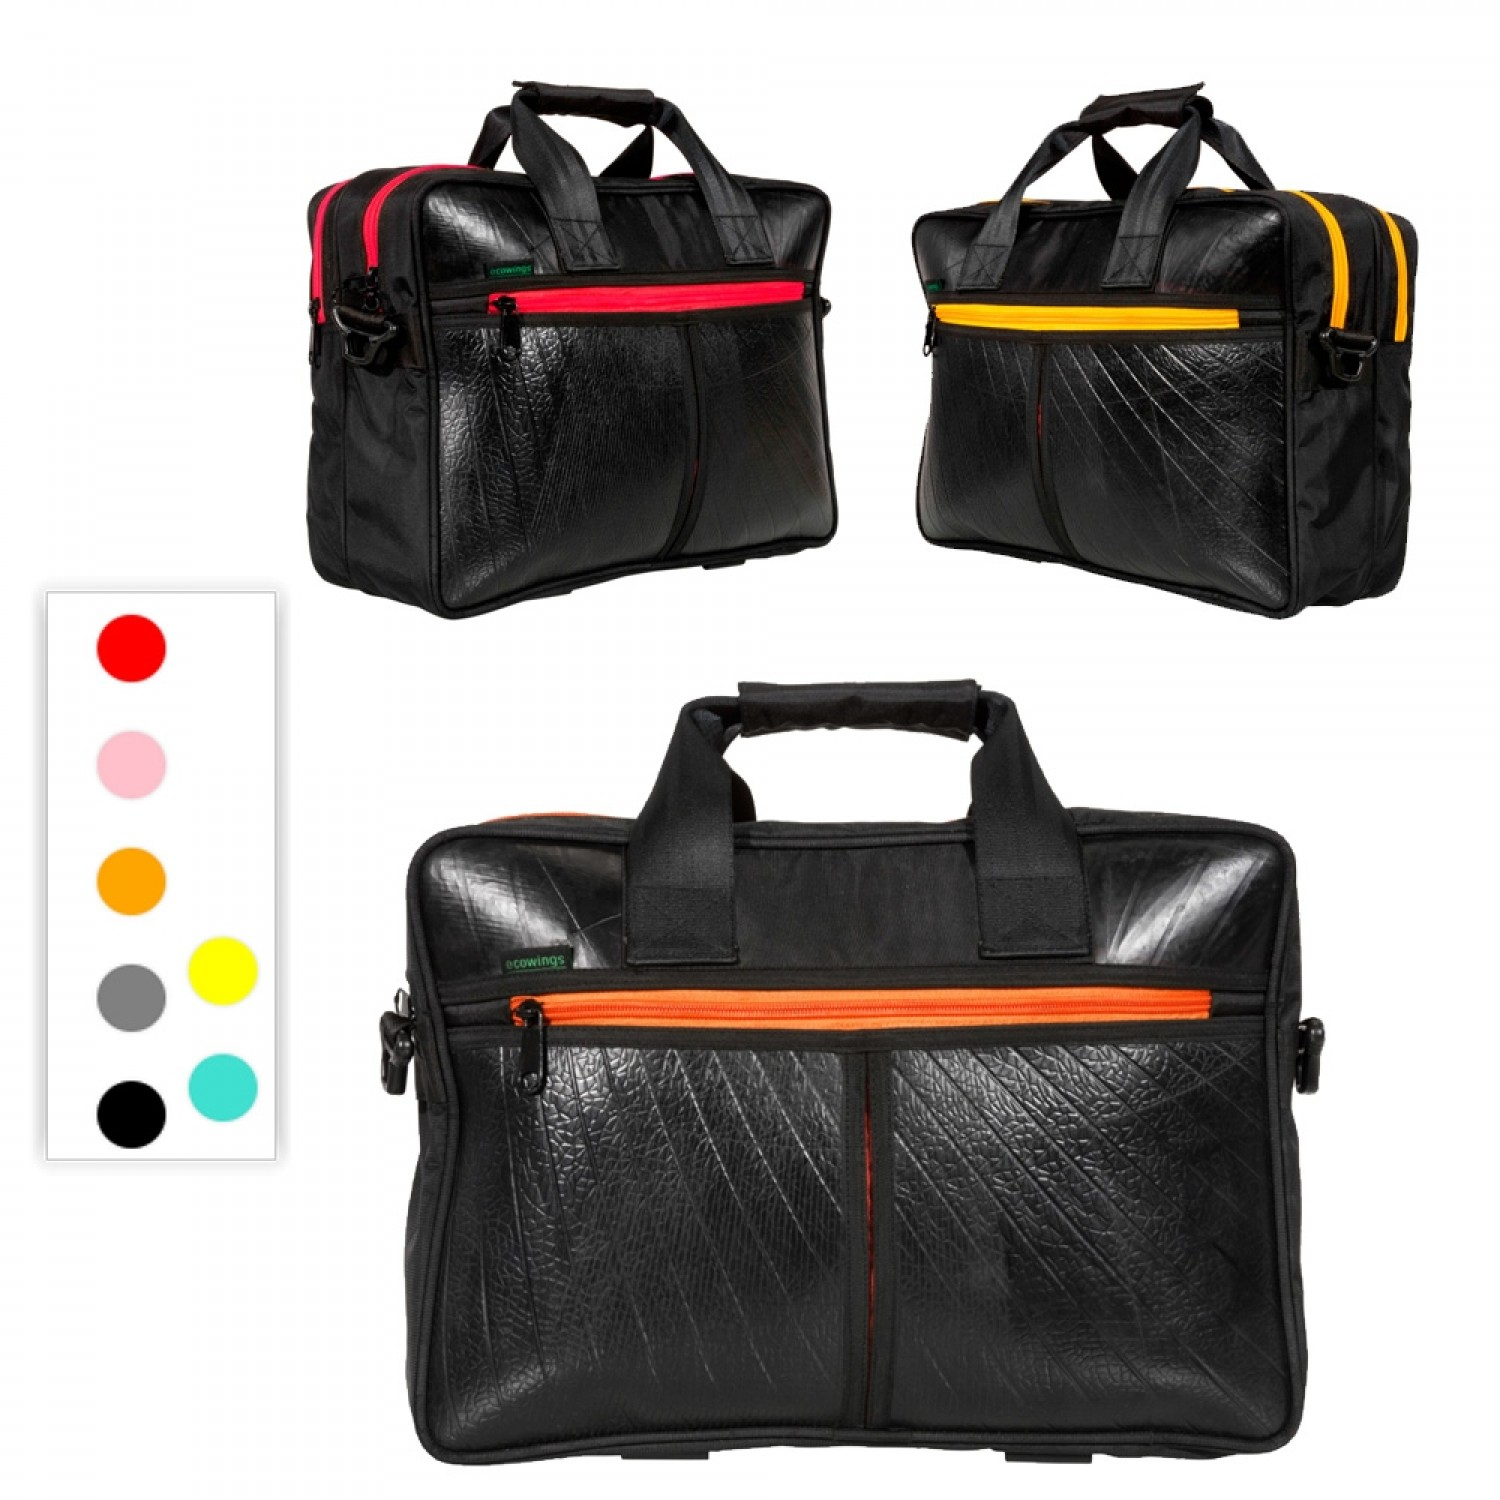 Panda upcycled Laptop Bag & Travel Bag | Ecowings